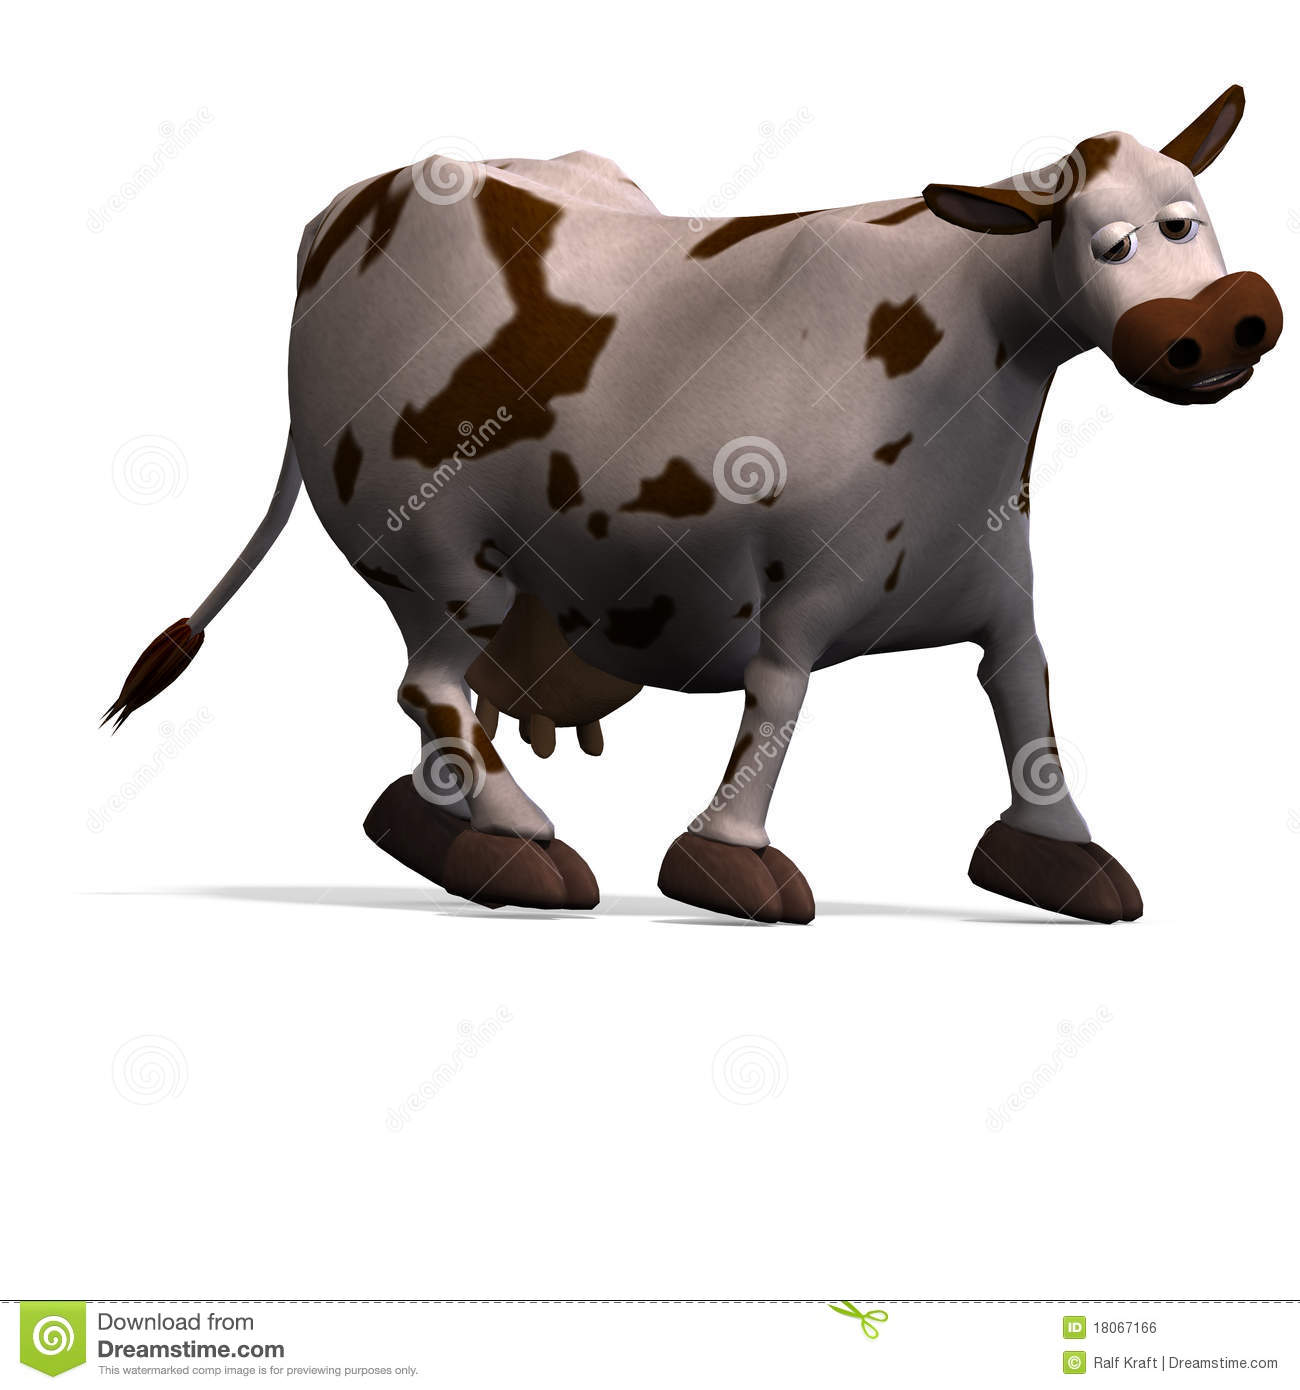 Cute and funny cartoon cow  3D rendering with clipping path and shadow    Cute Funny Cow Cartoon